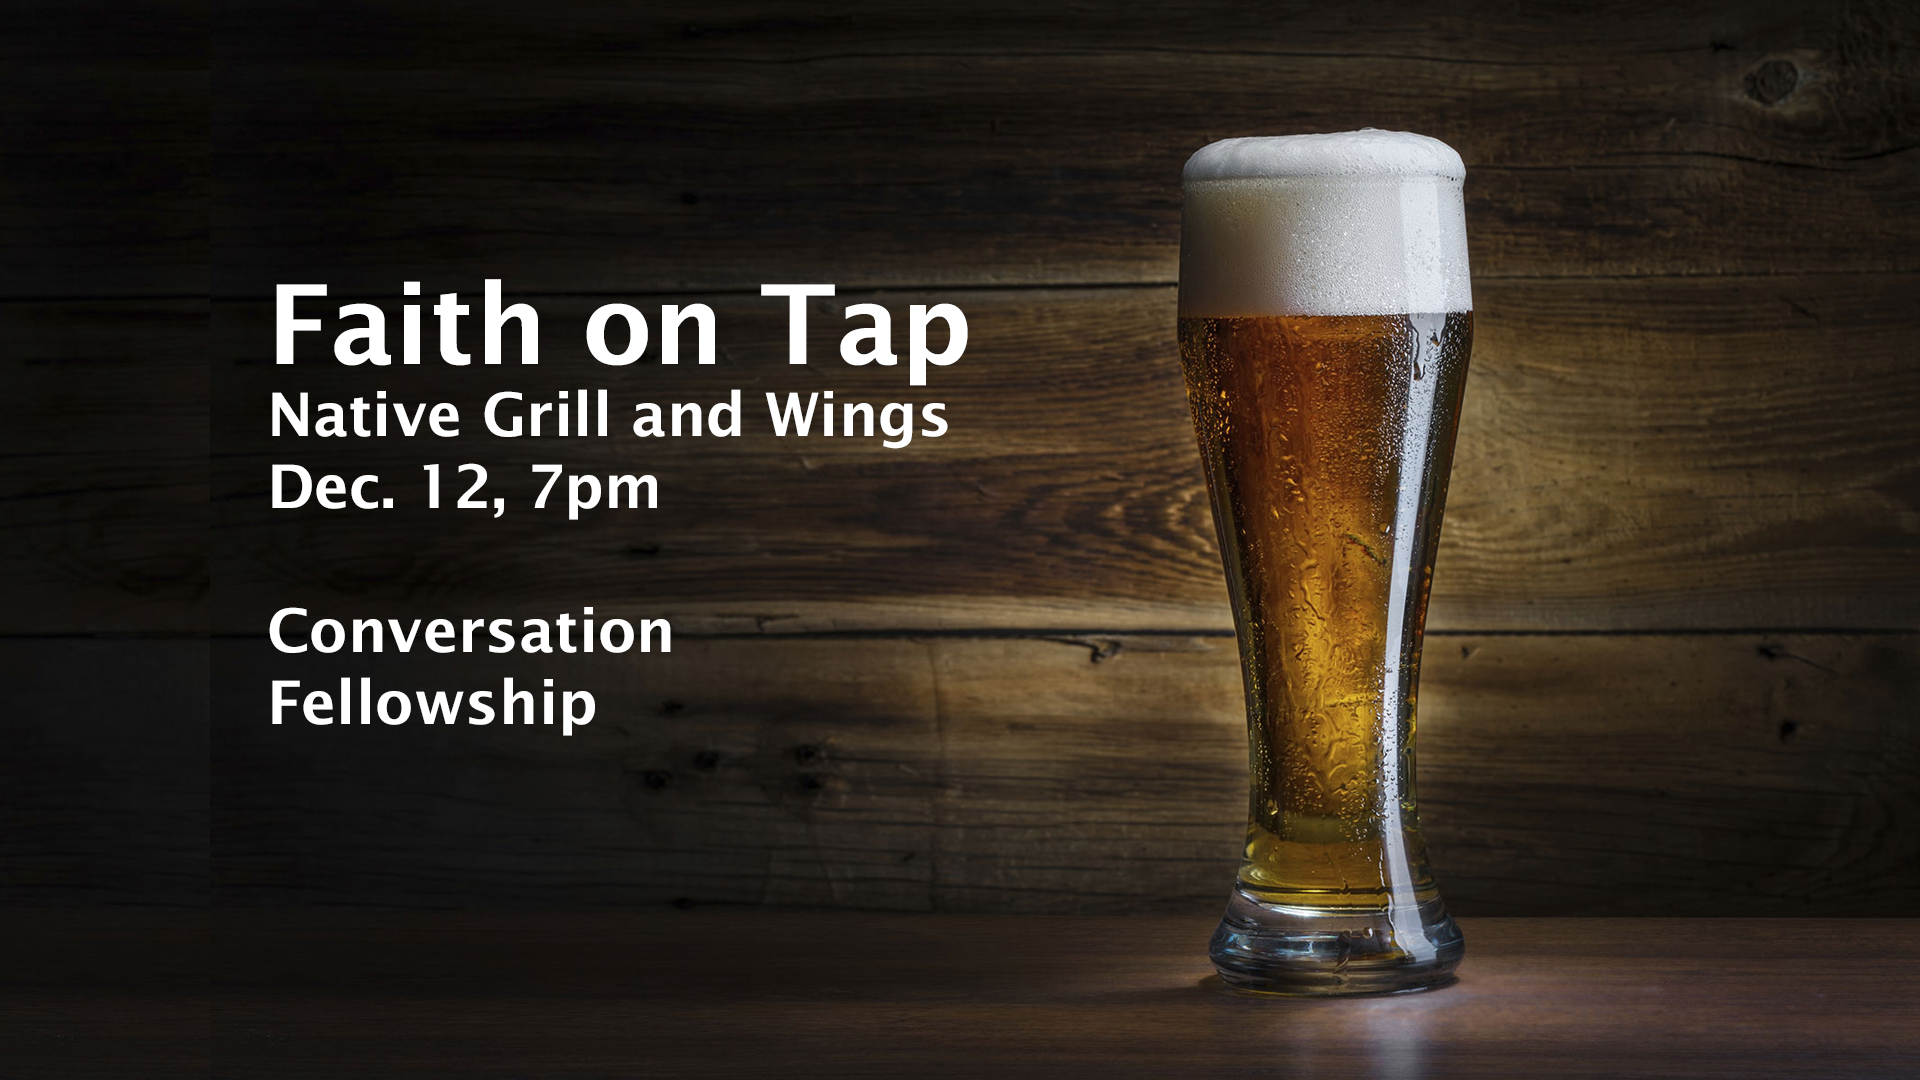 FaithonTap 2018-12-12.jpg